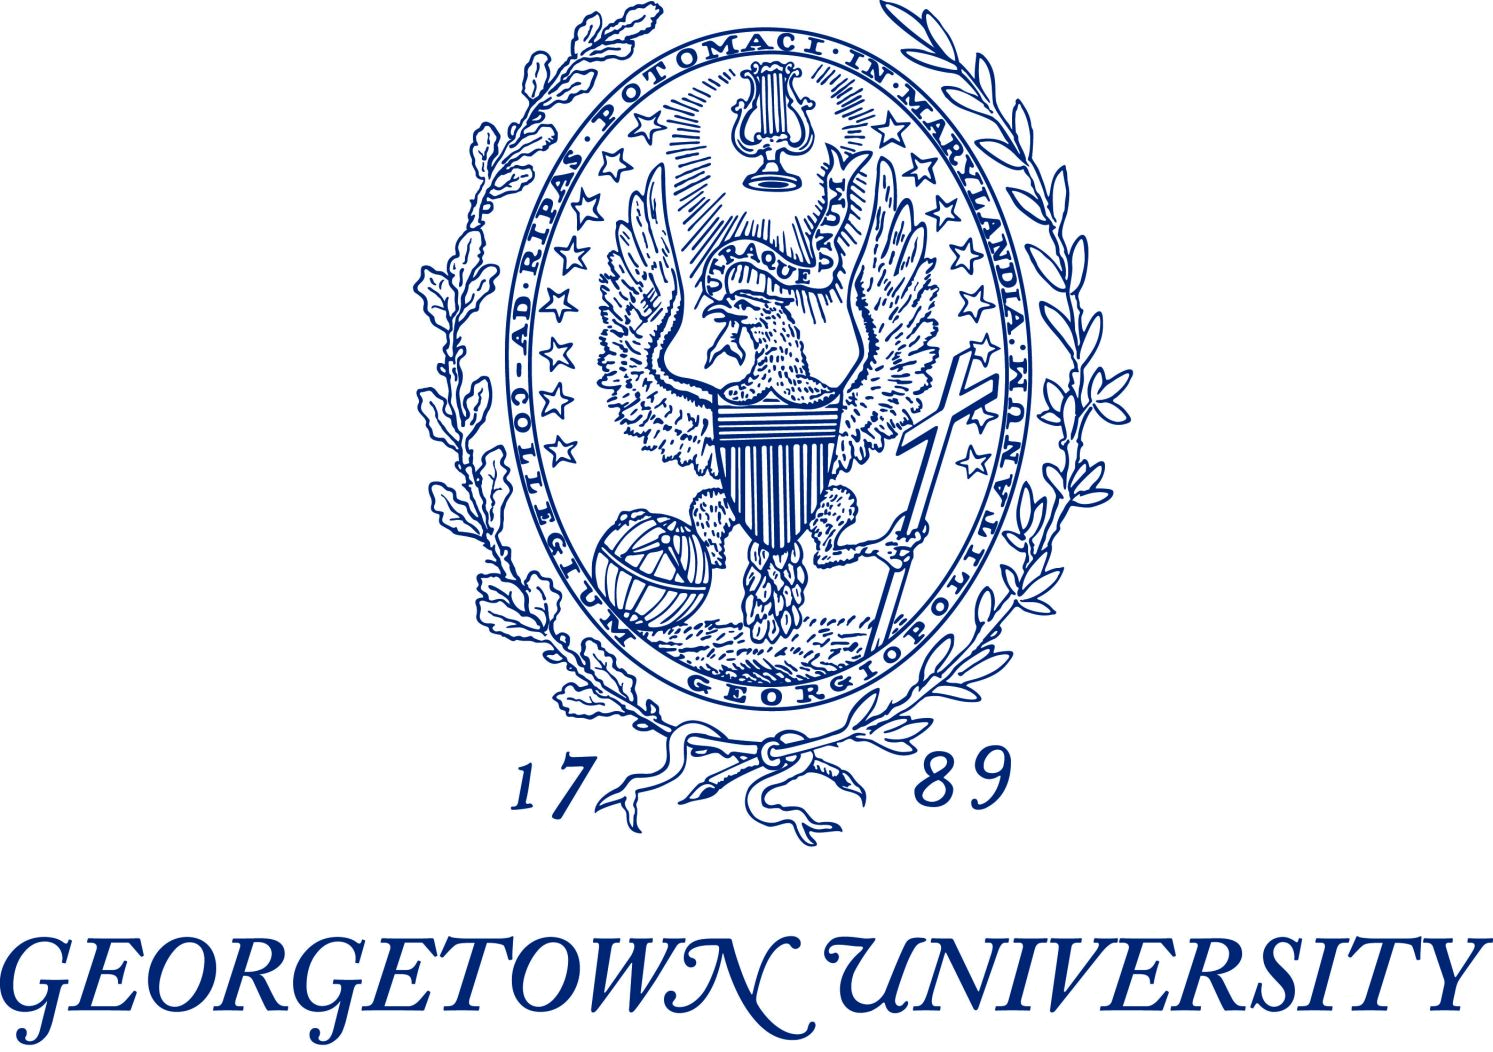 georgetownlogo.png